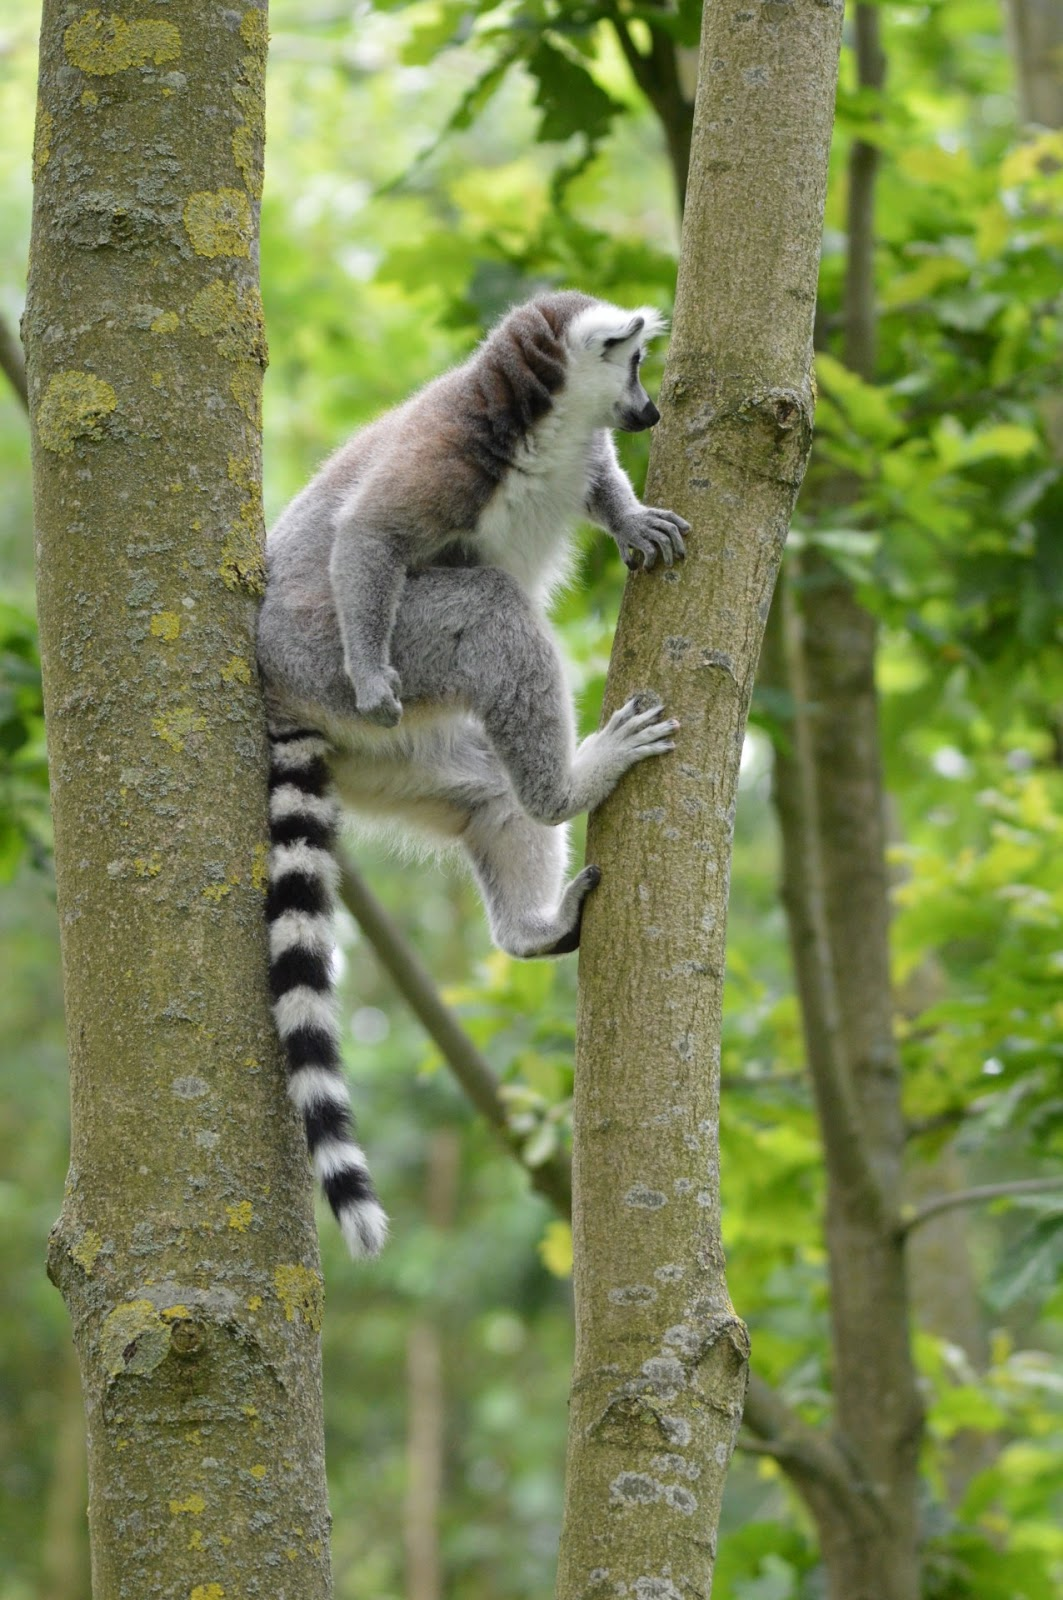 Picture of a lemur climbing a tree.